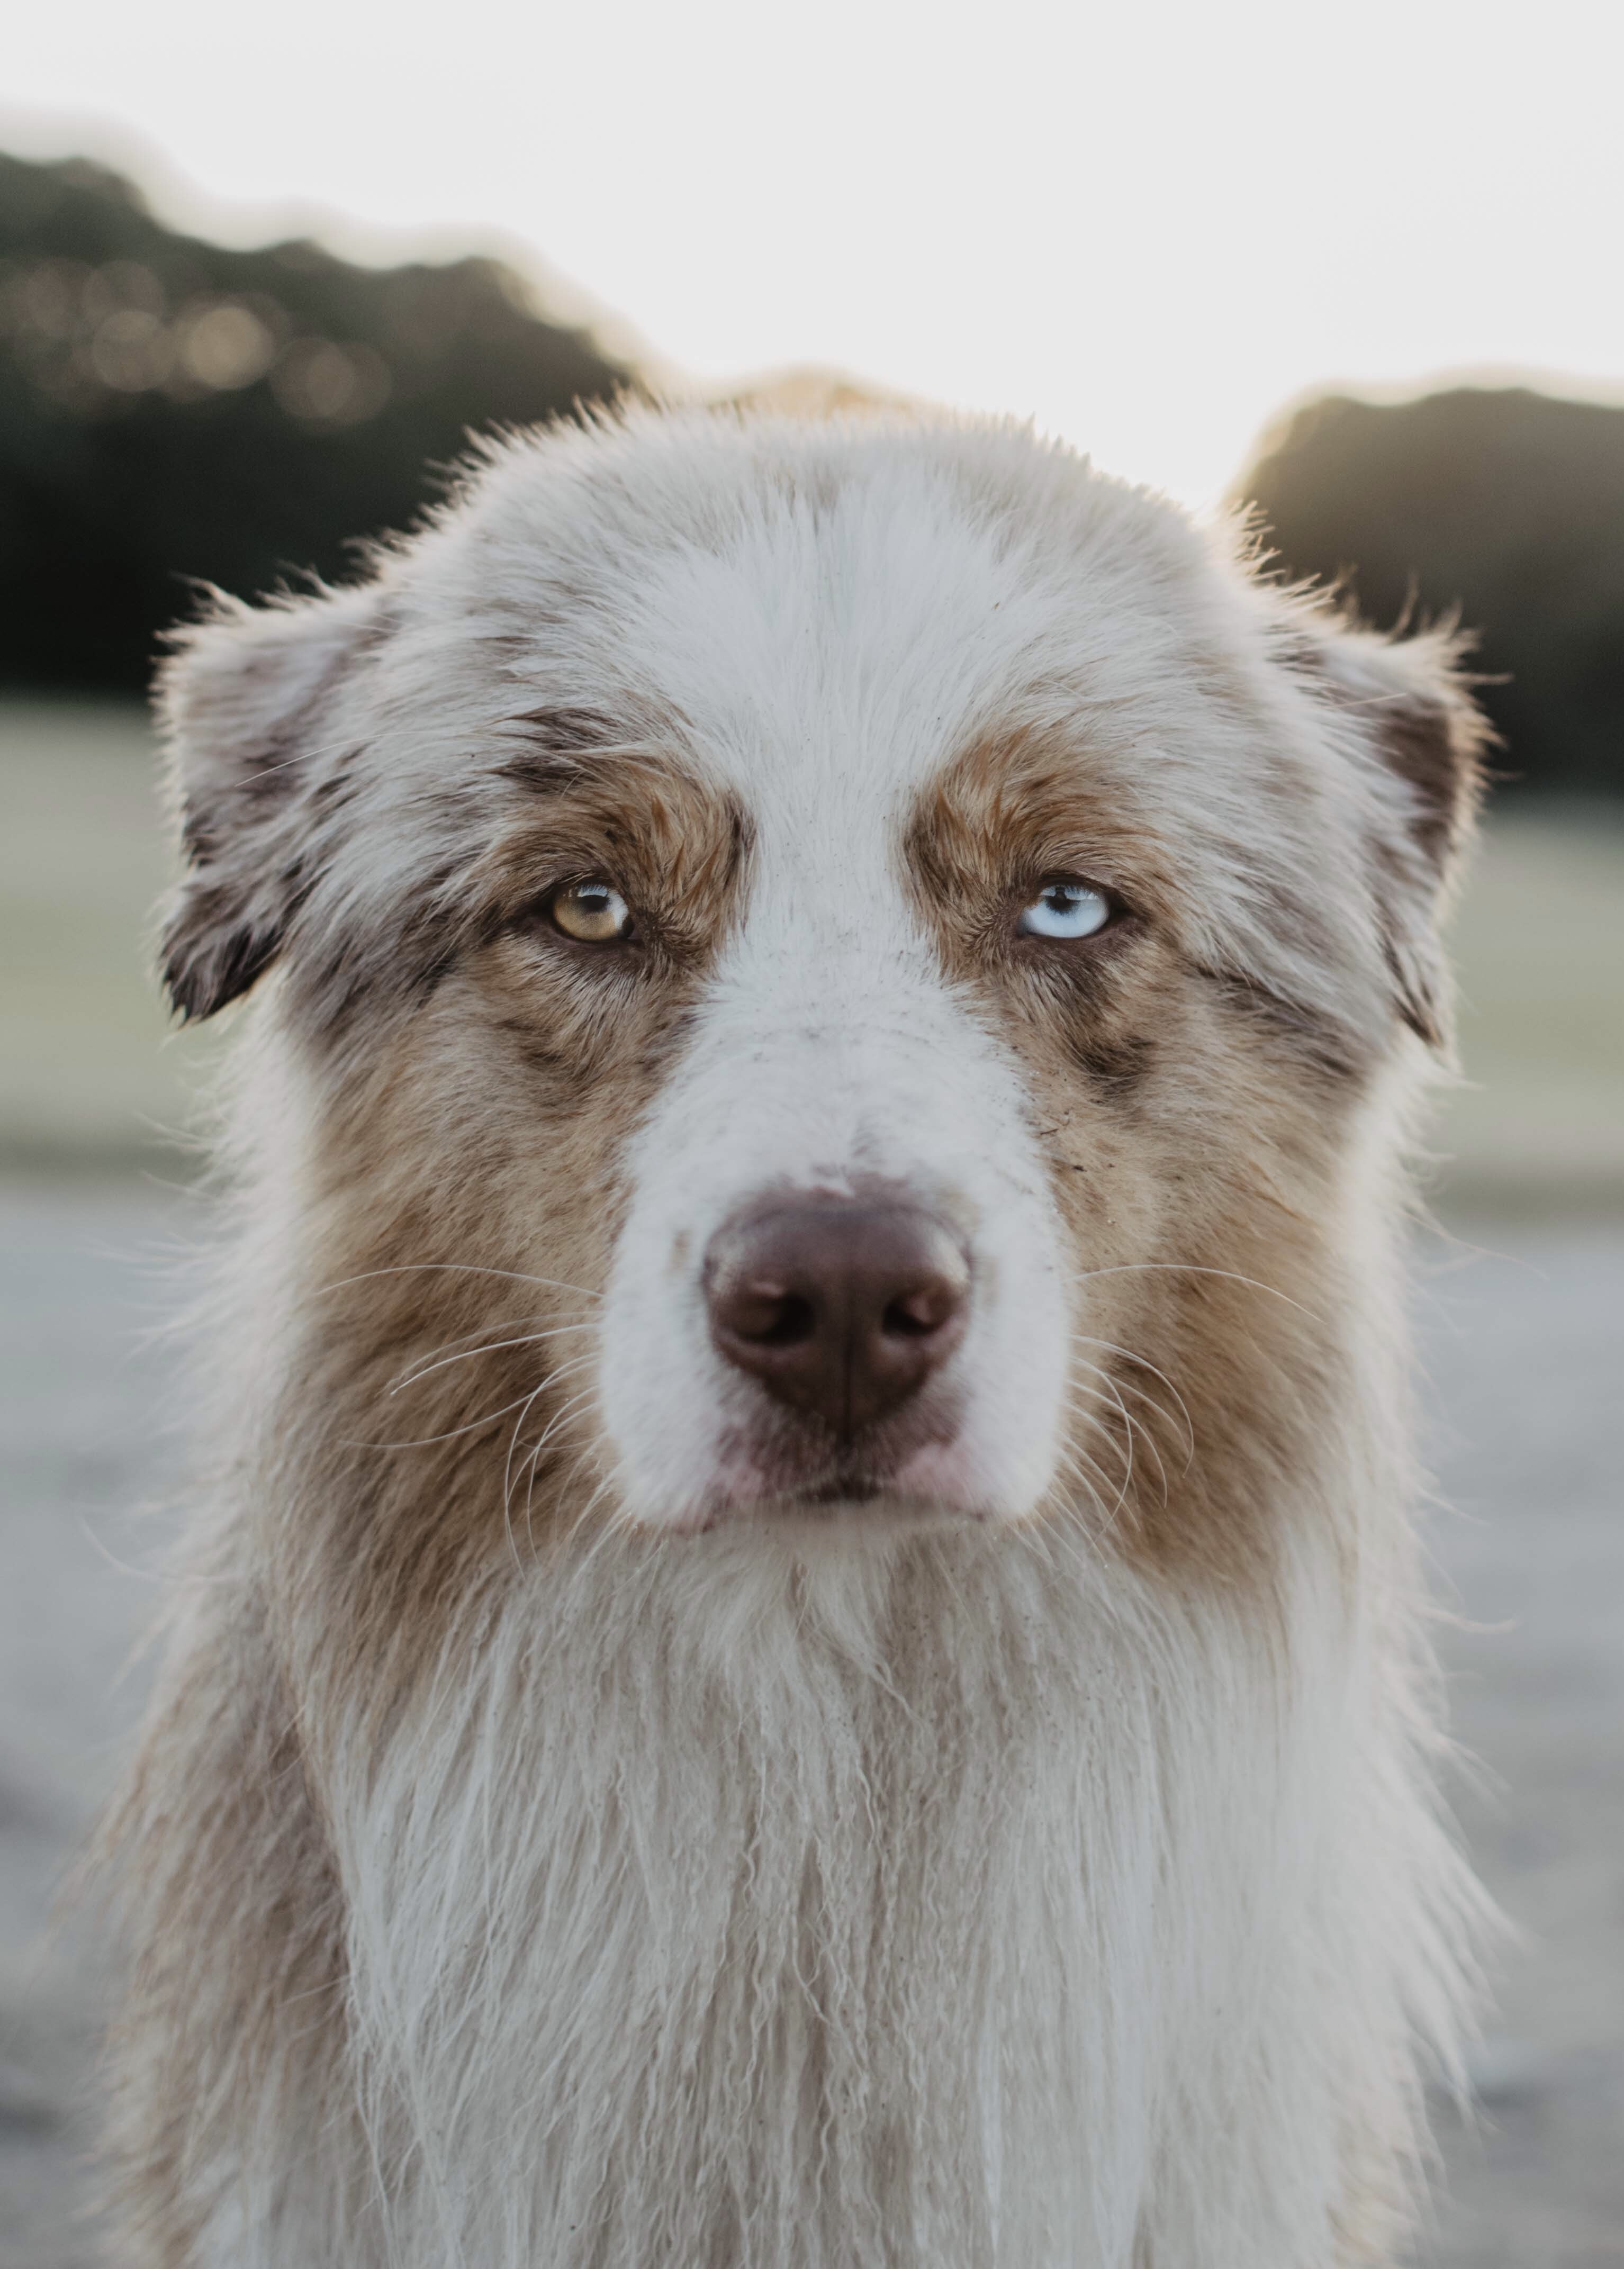 long-coated white and tan dog on selective focus photography